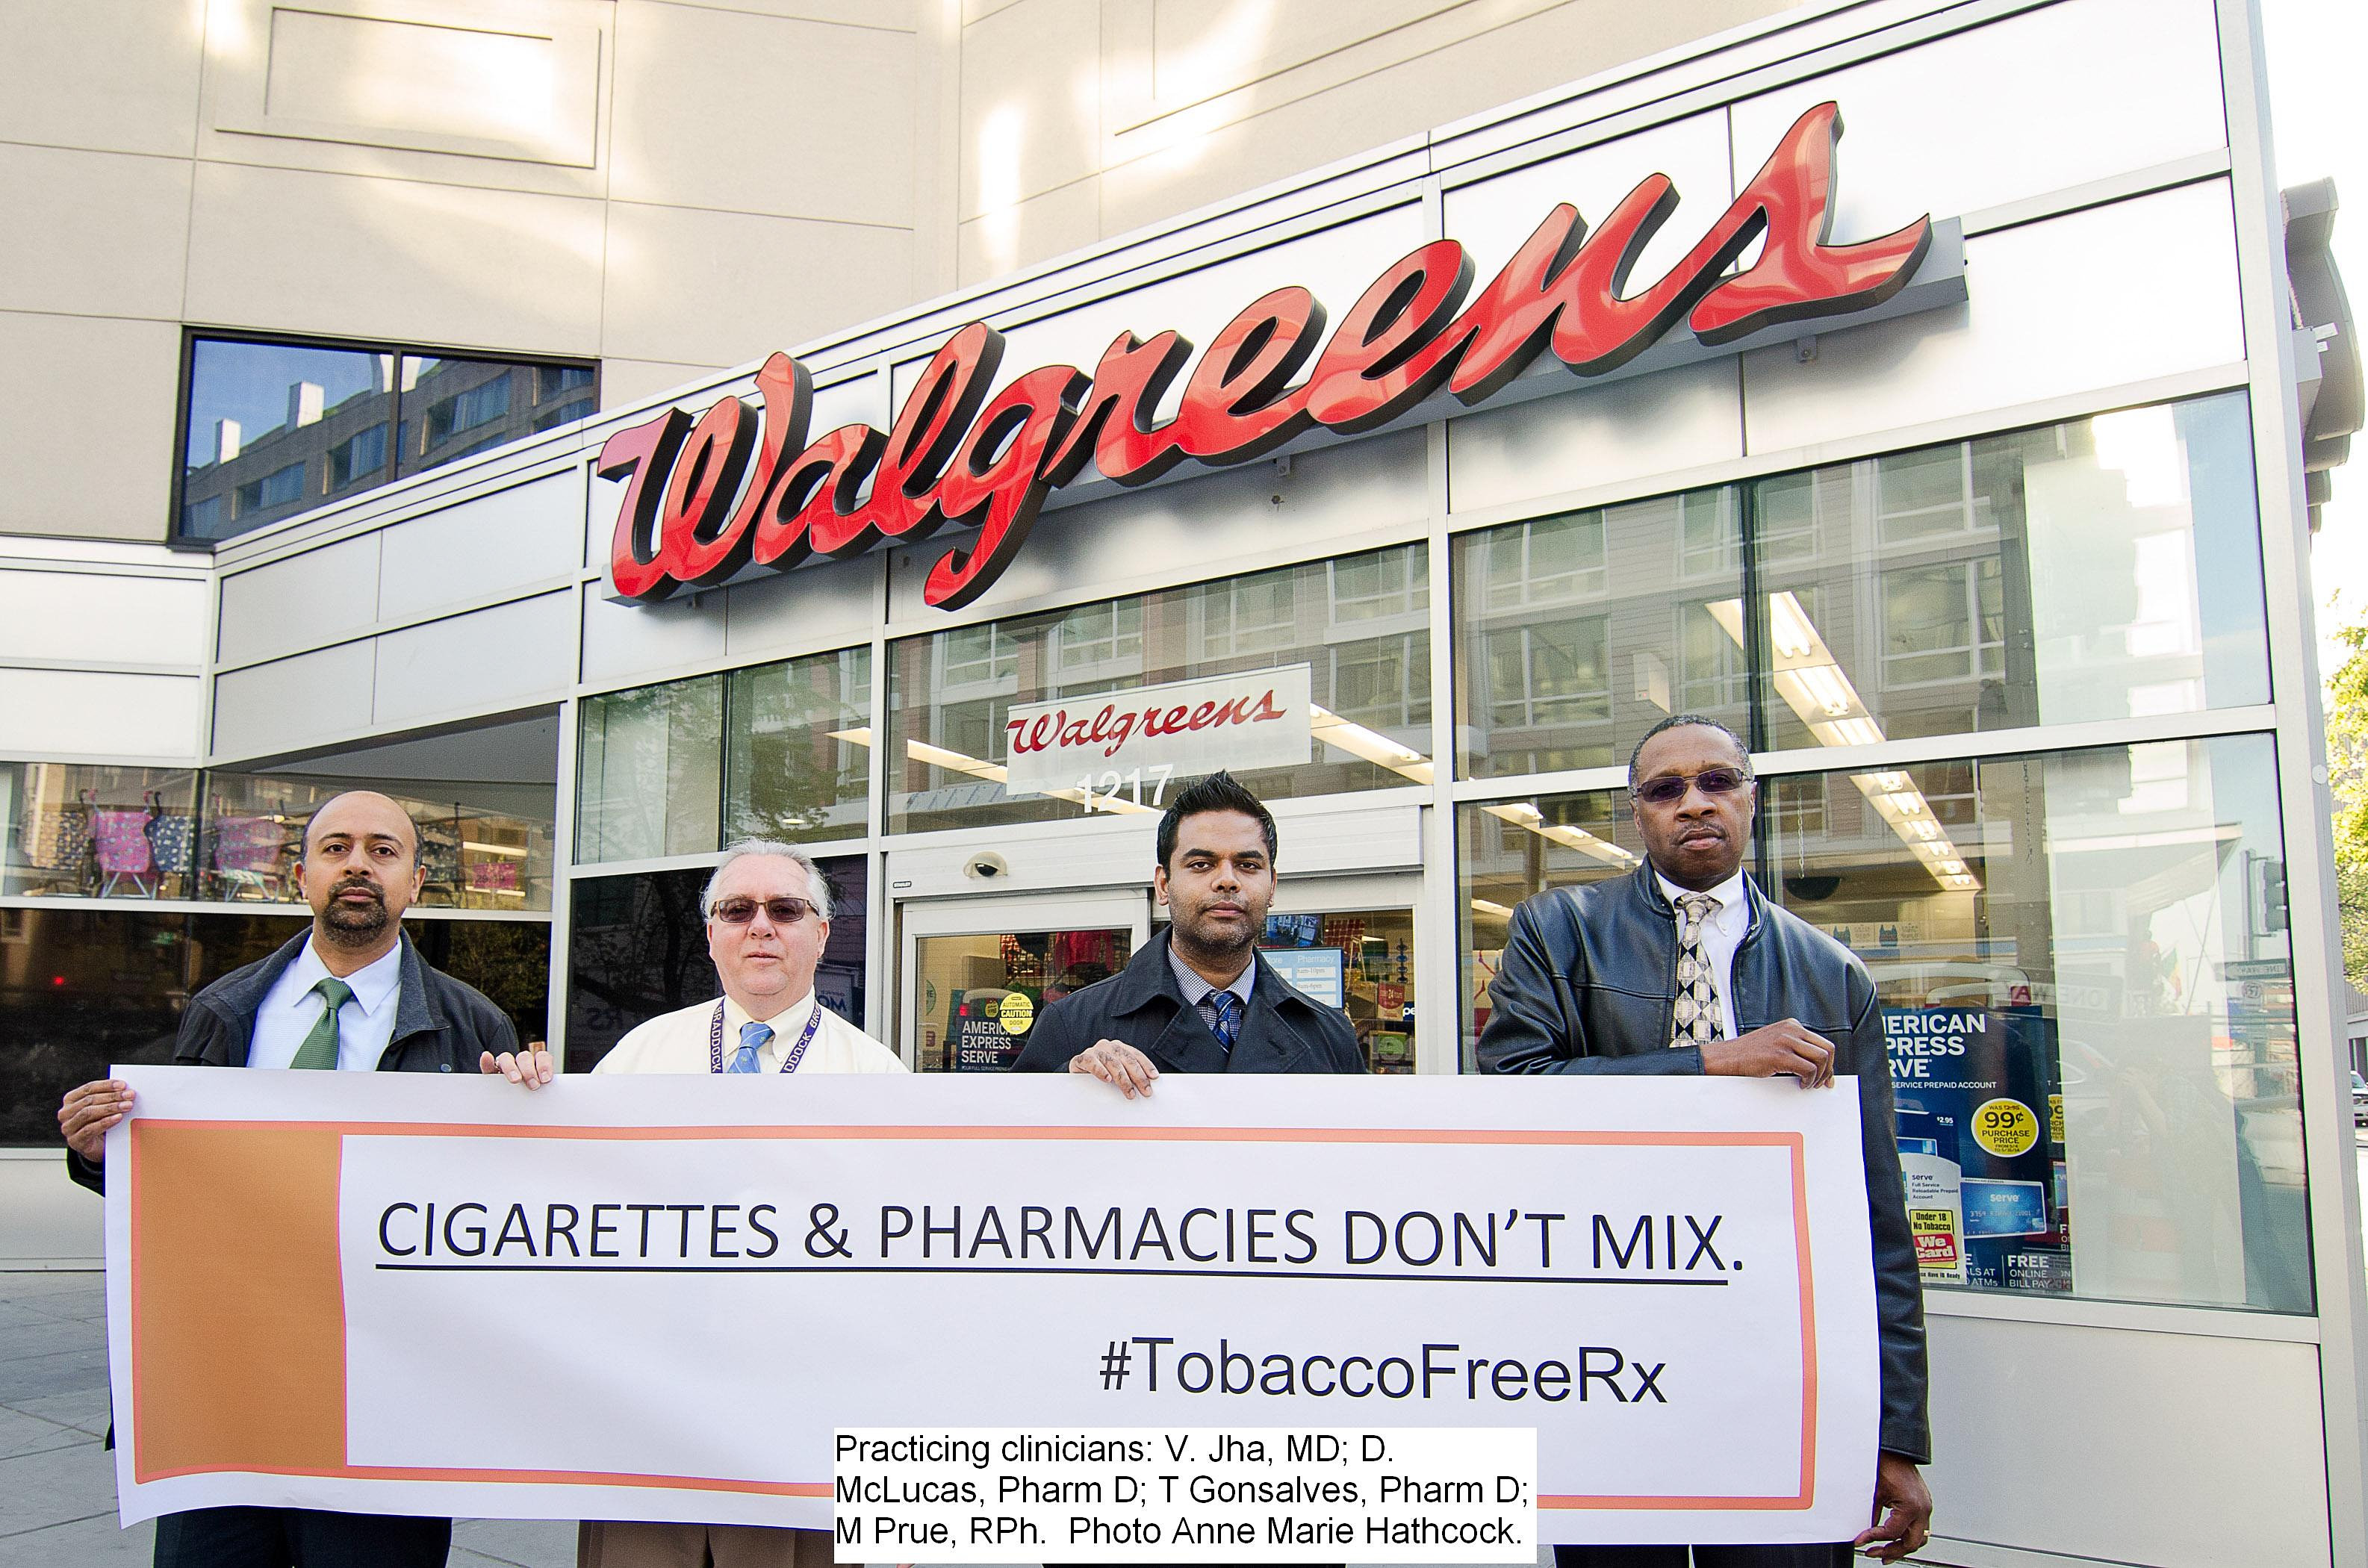 tobacco rx our goal is tobacco pharmacies tobacco rx large caption 5 22 2014 jpg